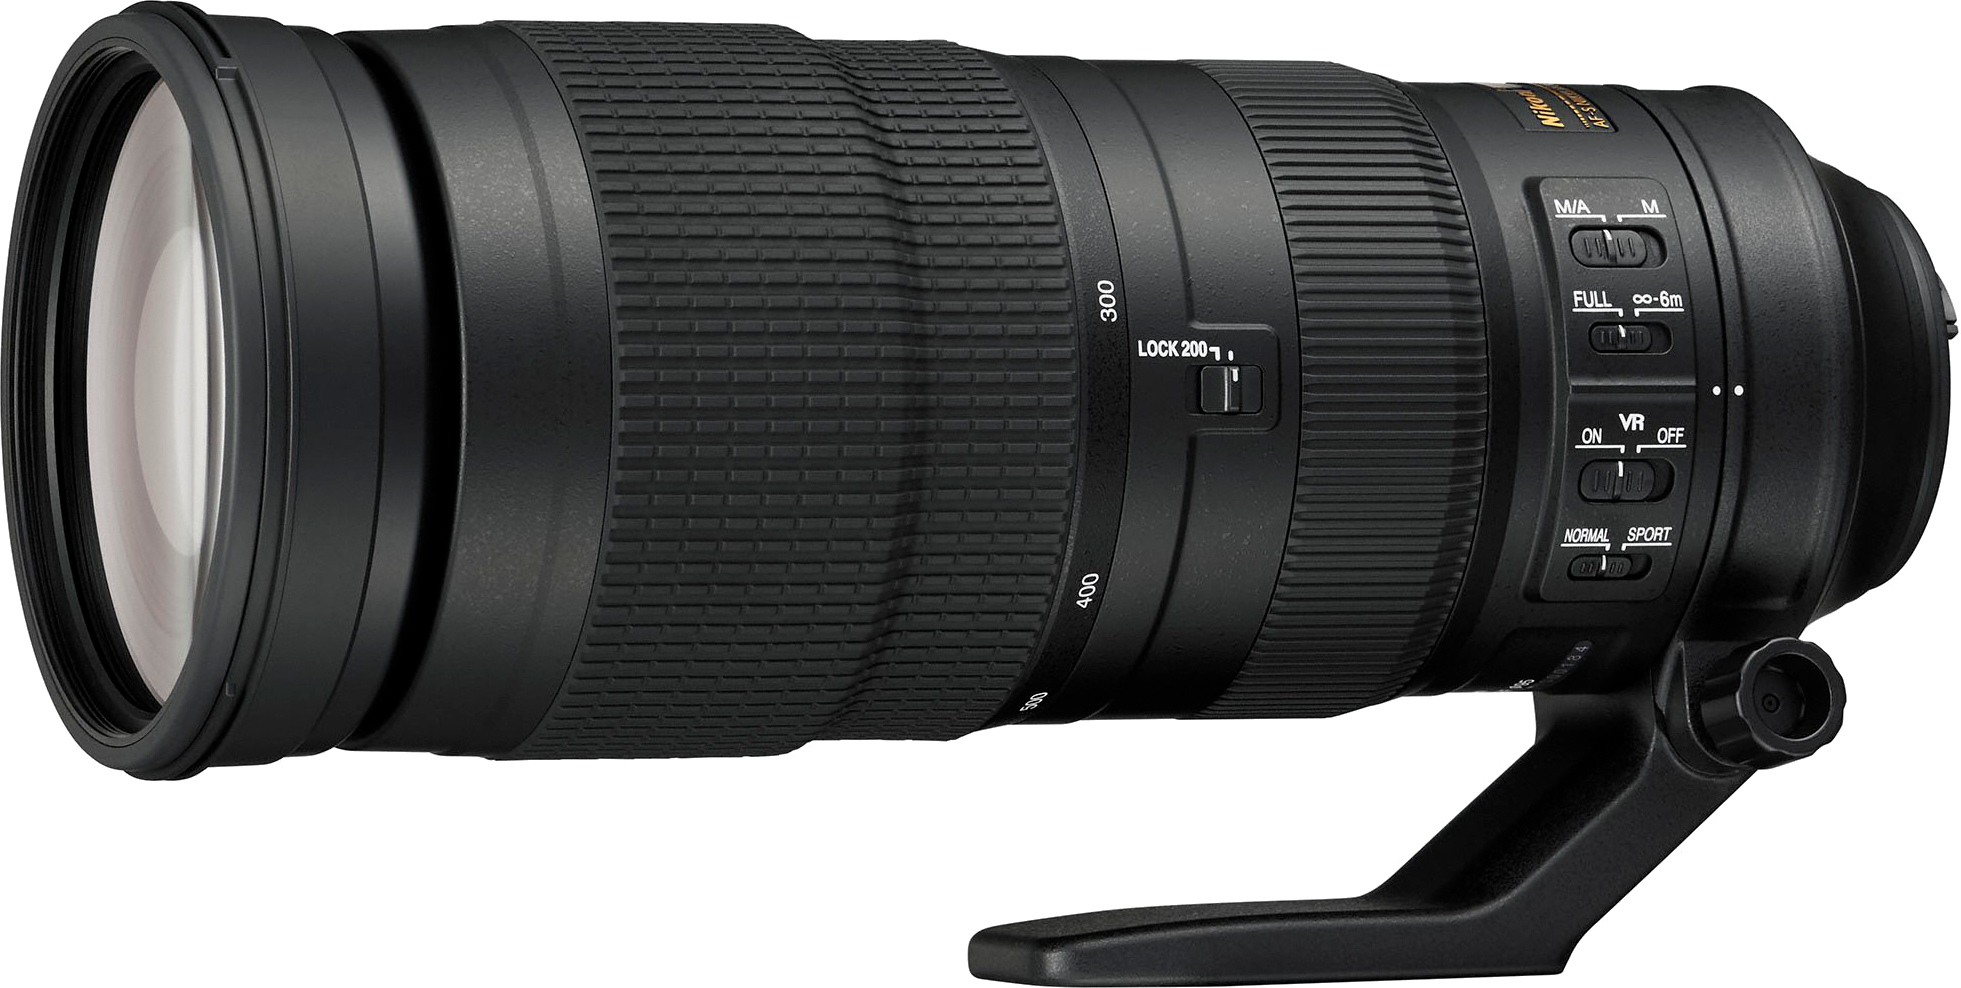 Wide range affordable supertelephoto with vibration reduction